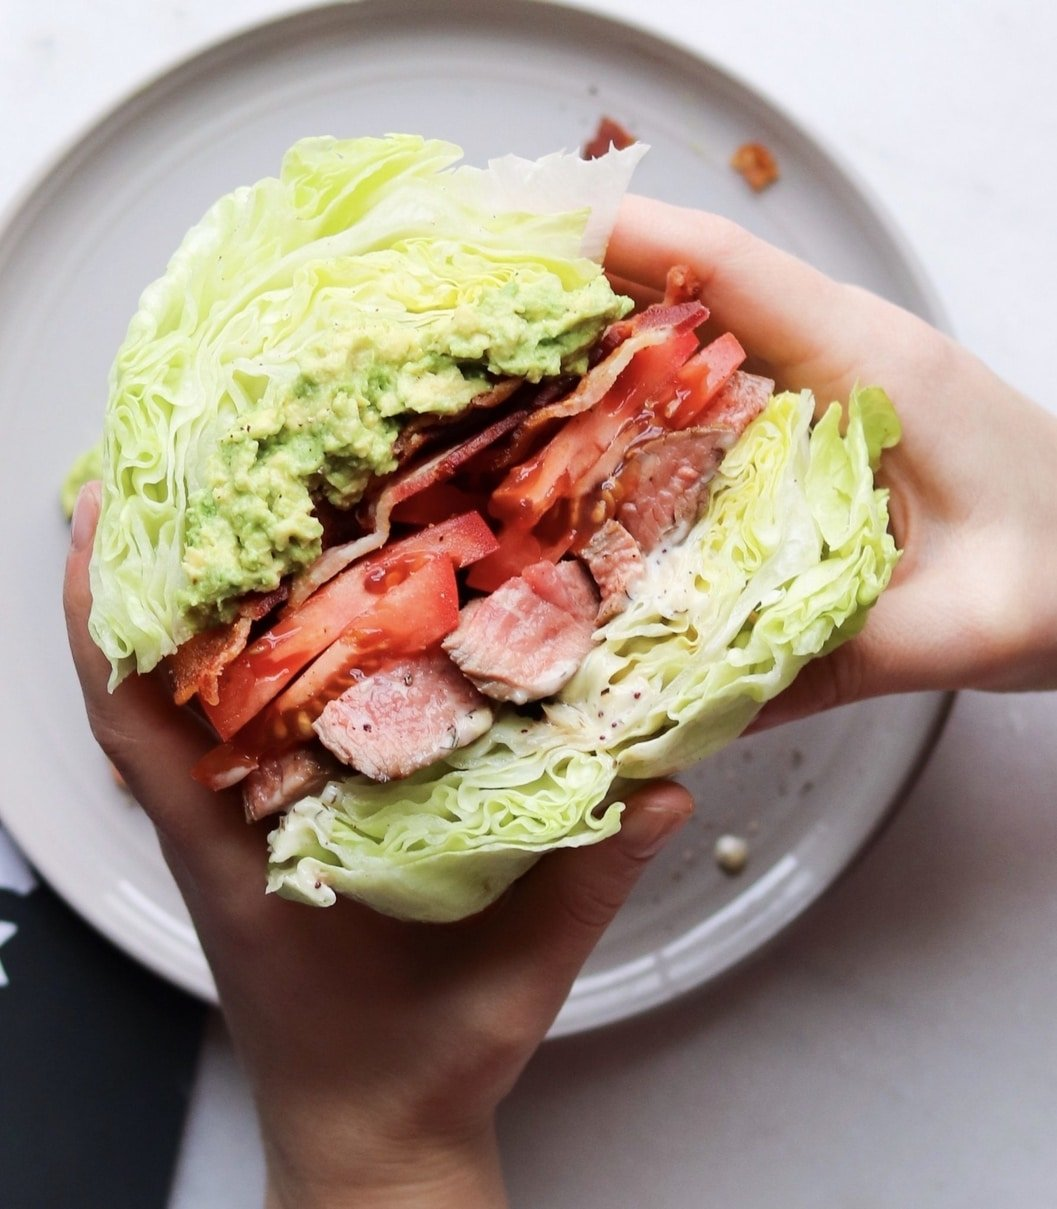 Two hands hold a large lettuce wrapped sandwich full of flank steak, bacon, smashed avocado, and tomatoes.